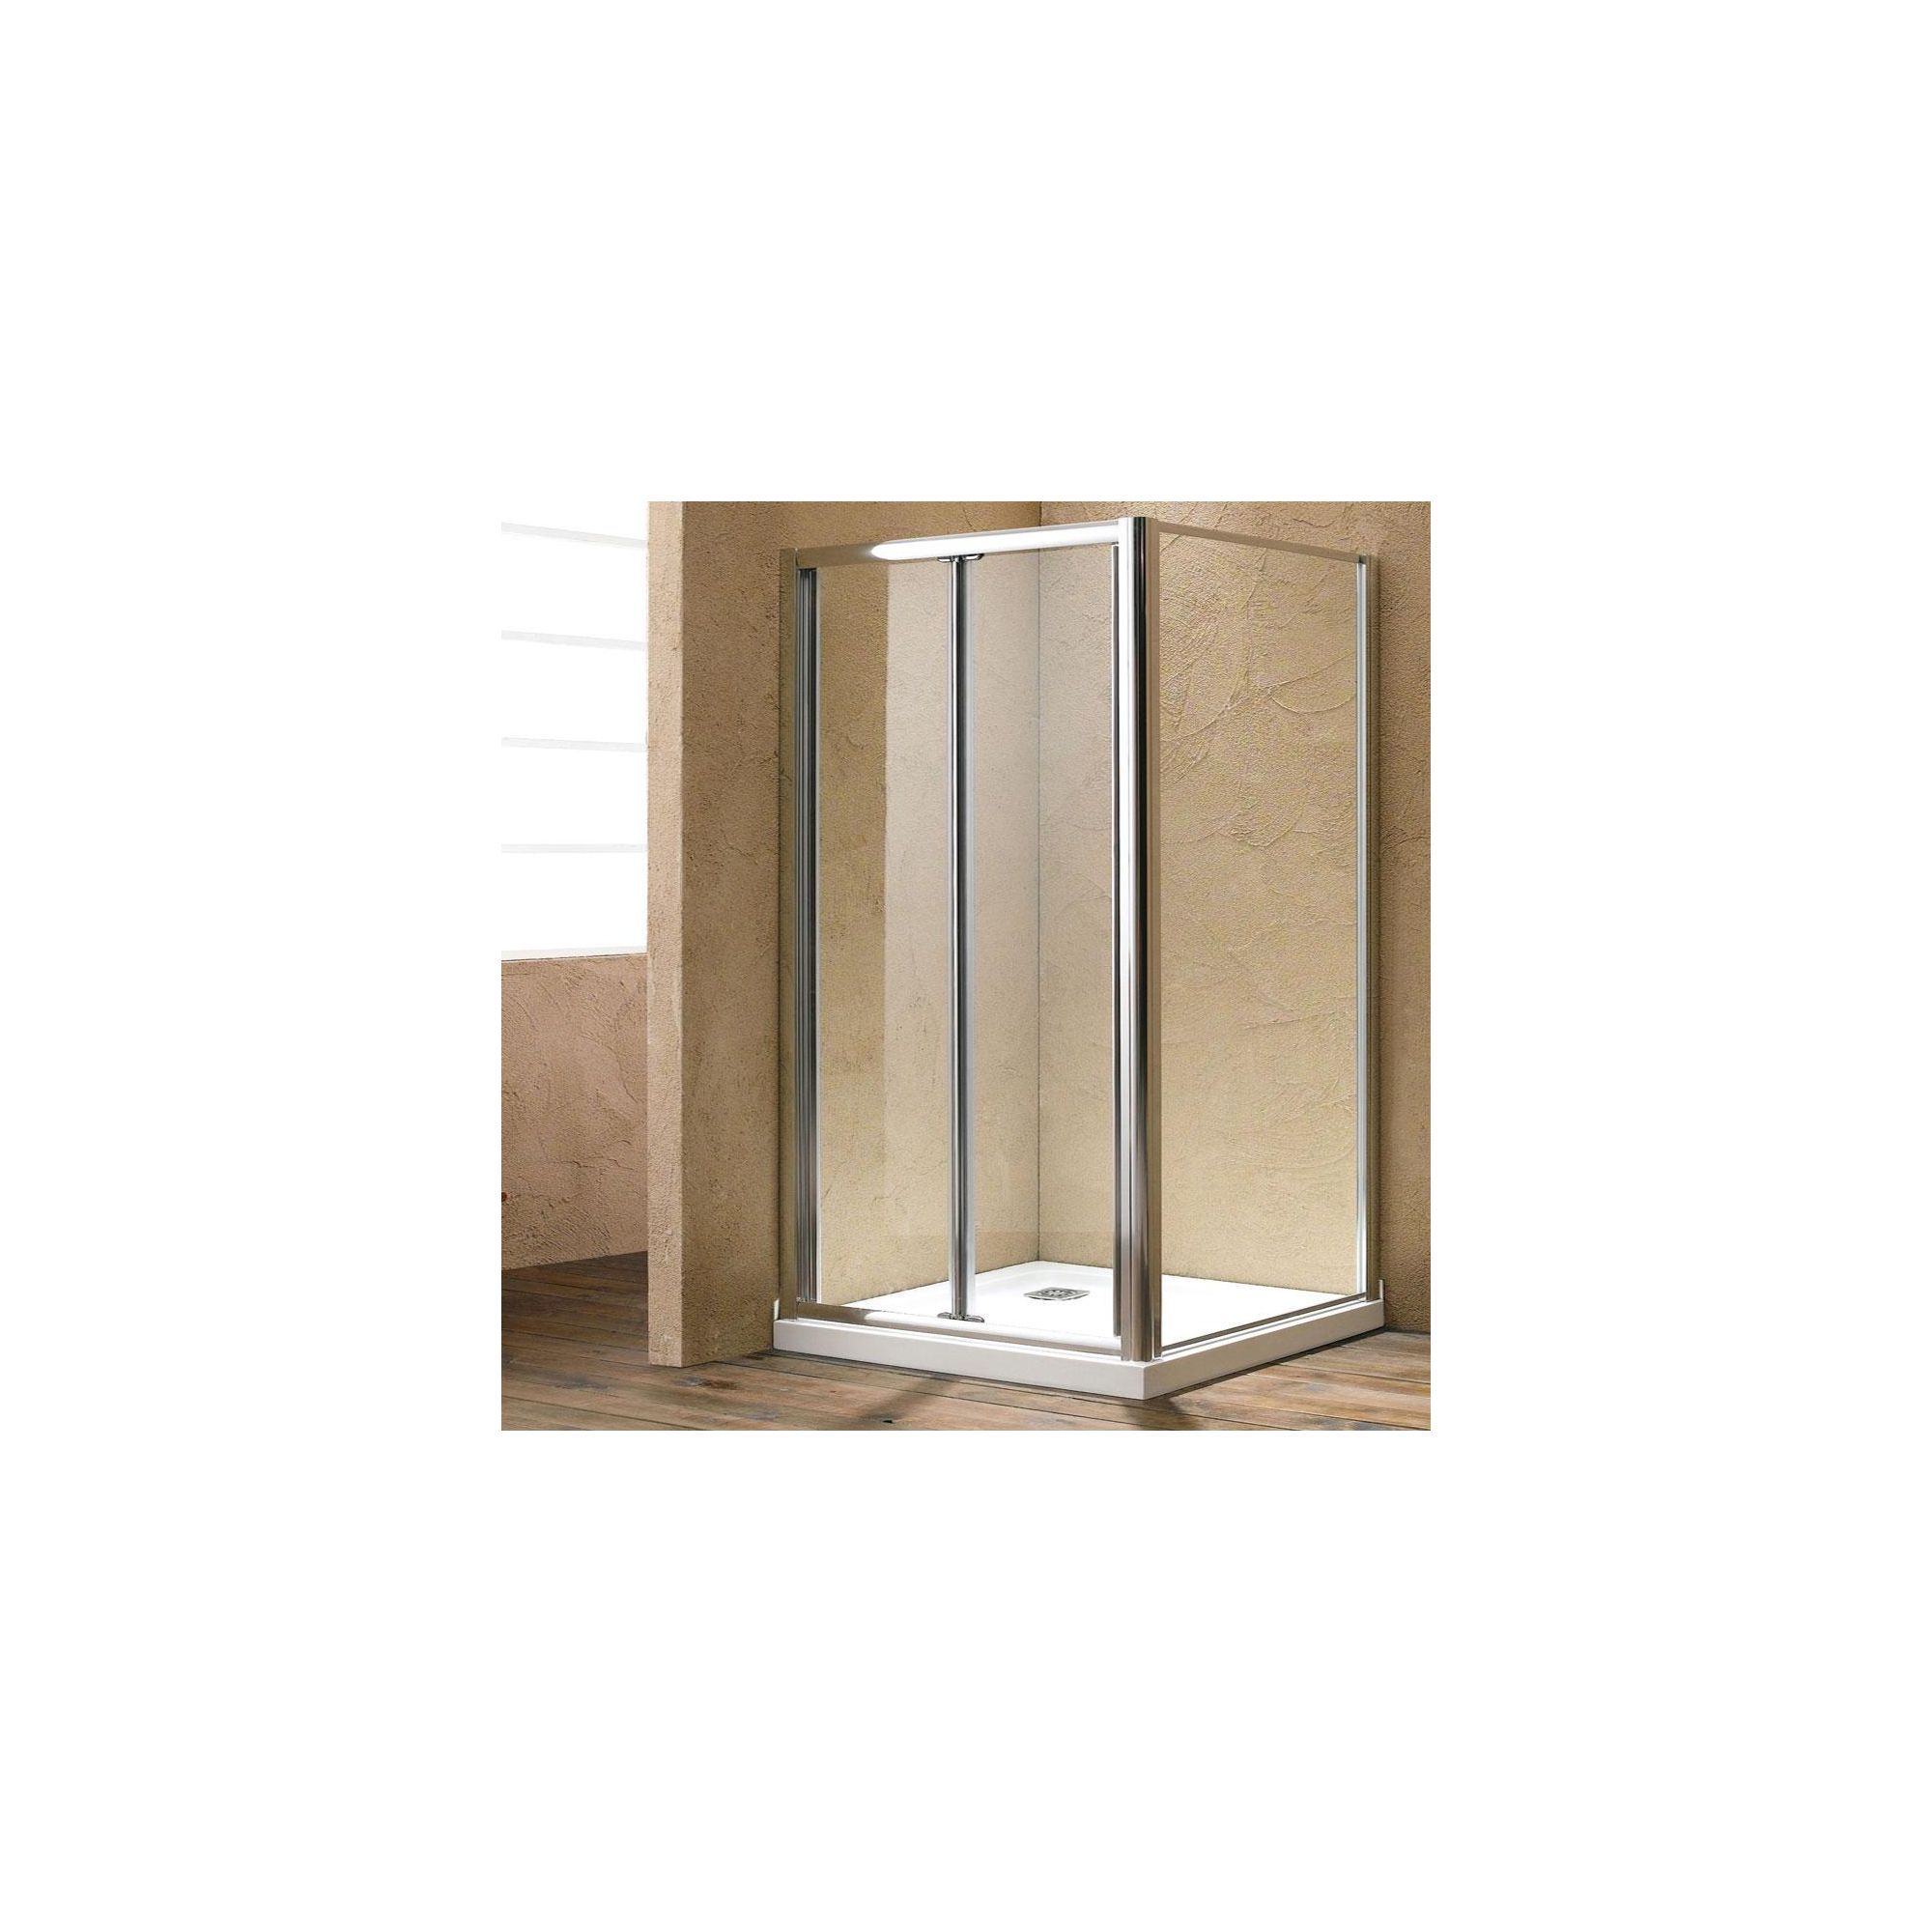 Duchy Style Twin Bi-Fold Door Shower Enclosure, 1200mm x 800mm, 6mm Glass, Low Profile Tray at Tesco Direct